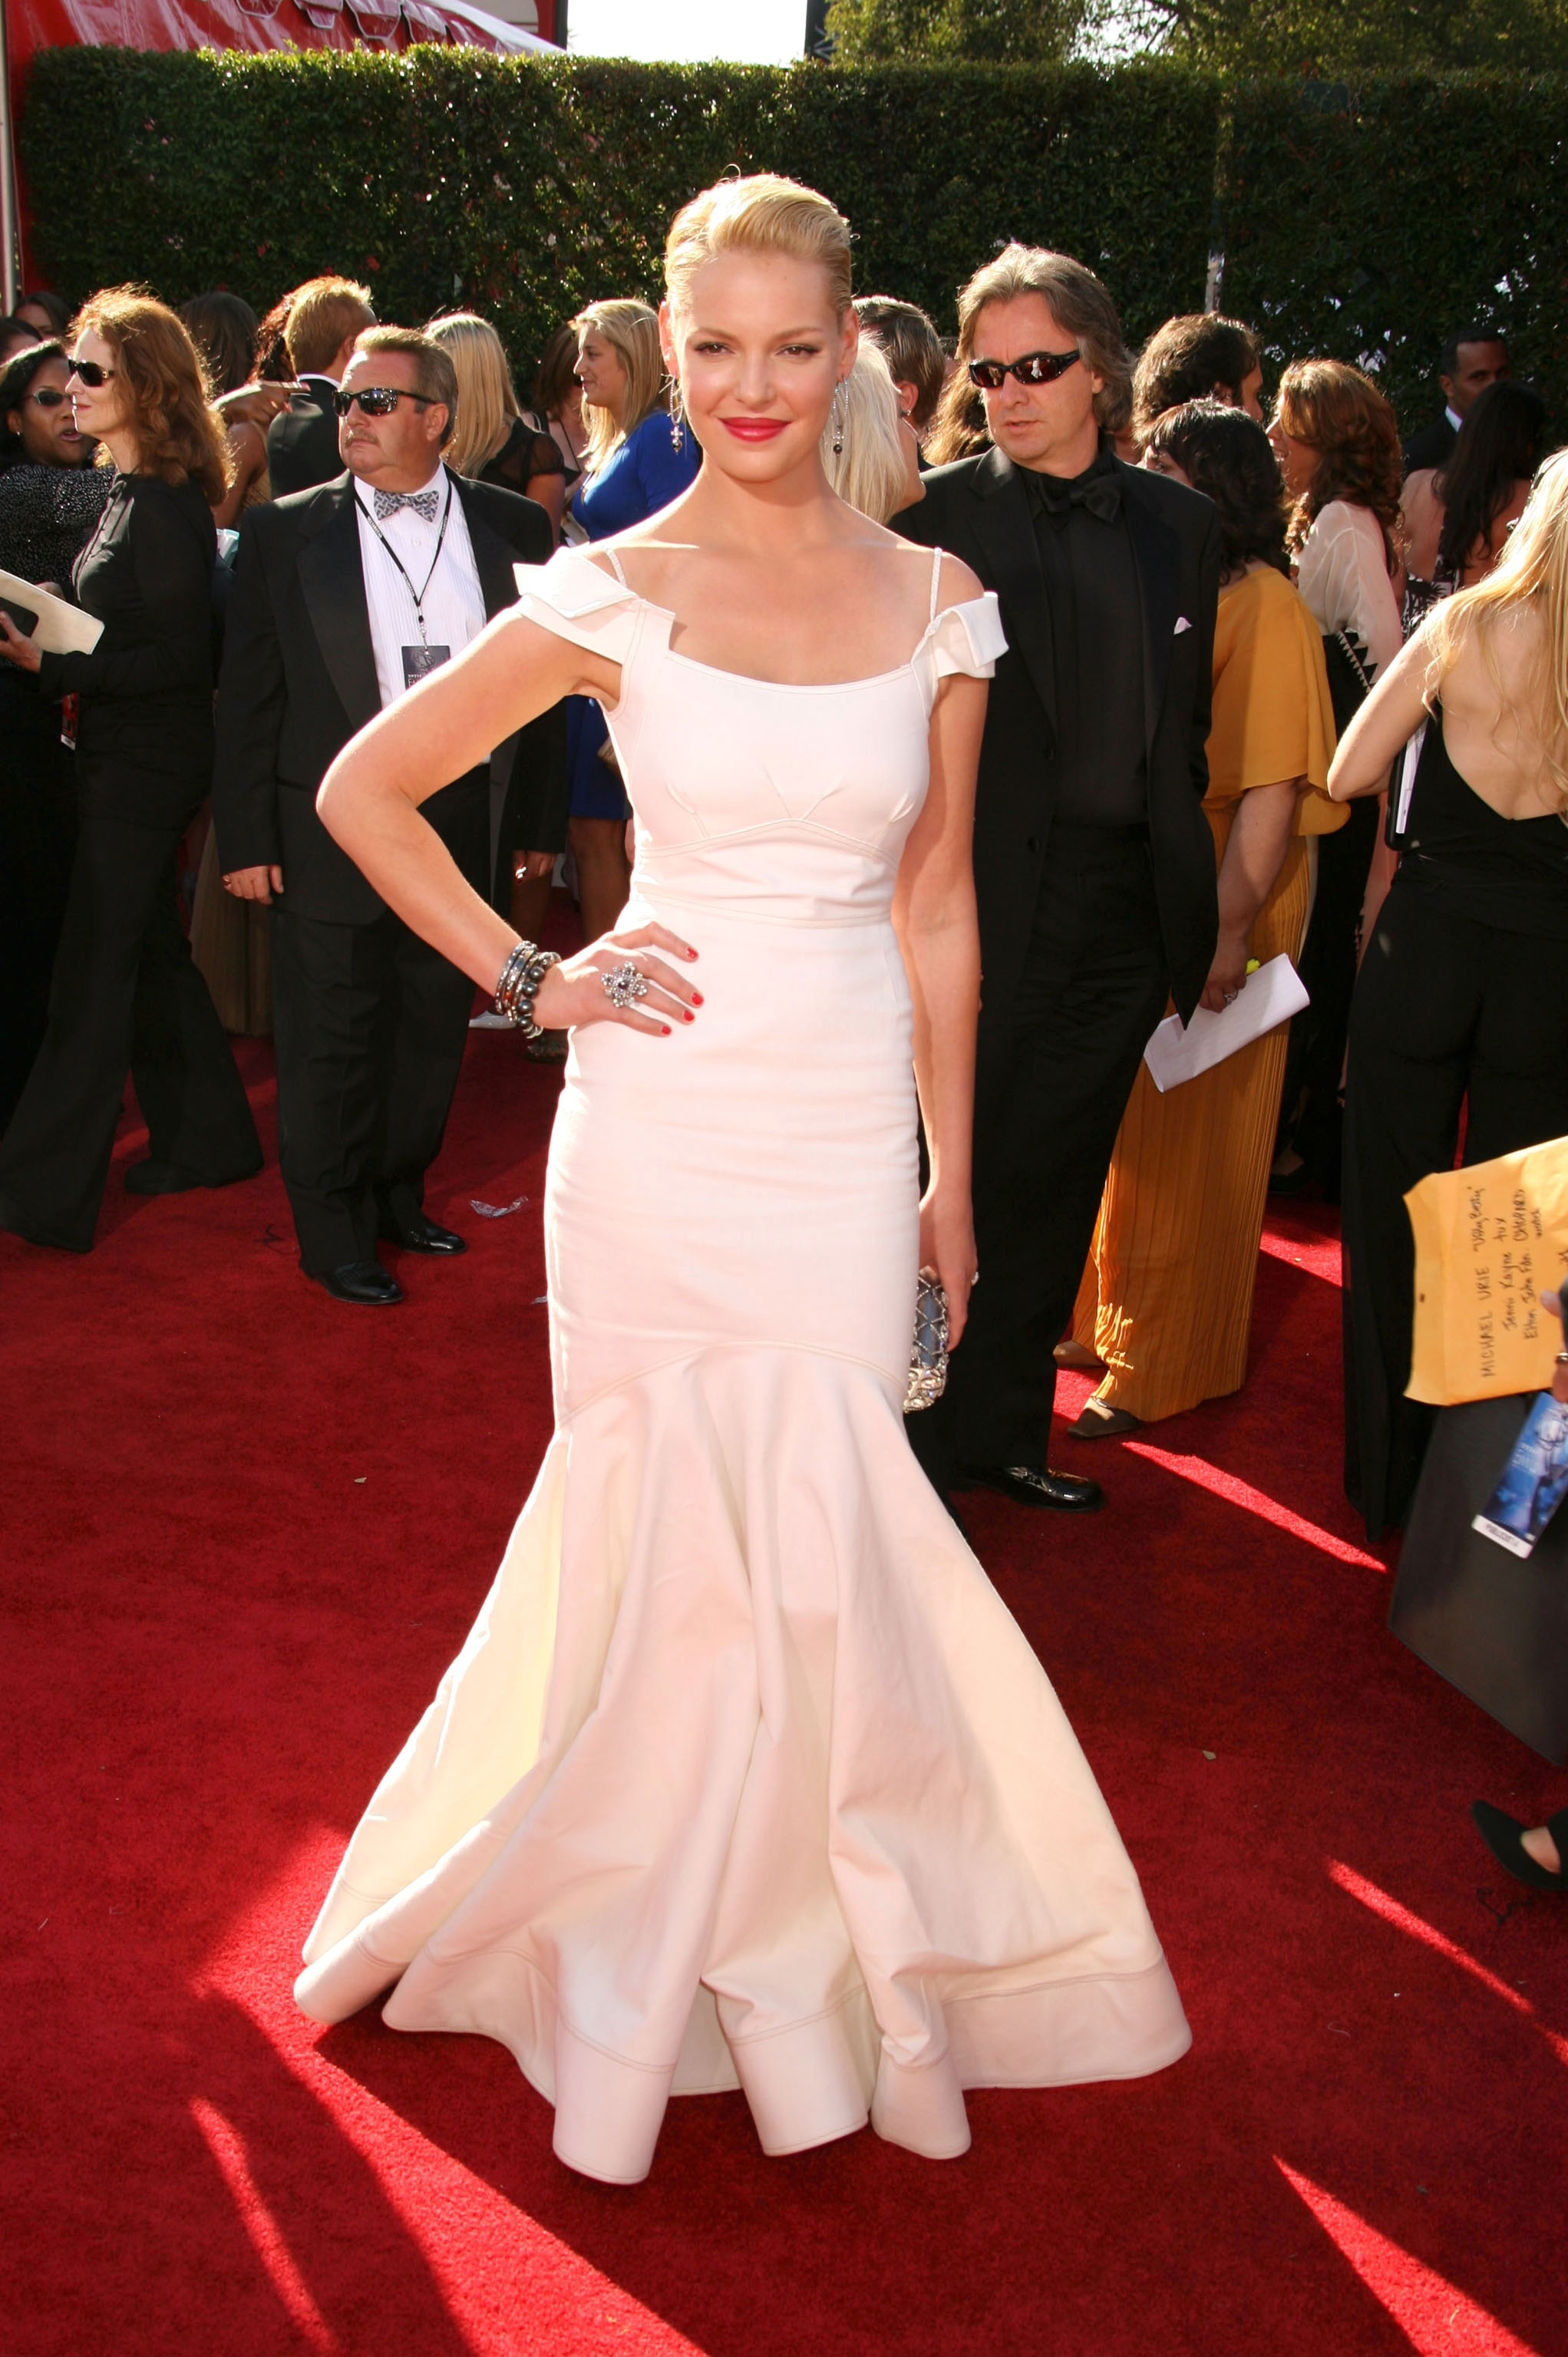 Katherine Heigl arrives at the 59th Annual Primetime Emmy Awards at the Shrine Auditorium in Los Angeles on Sept. 16, 2007.